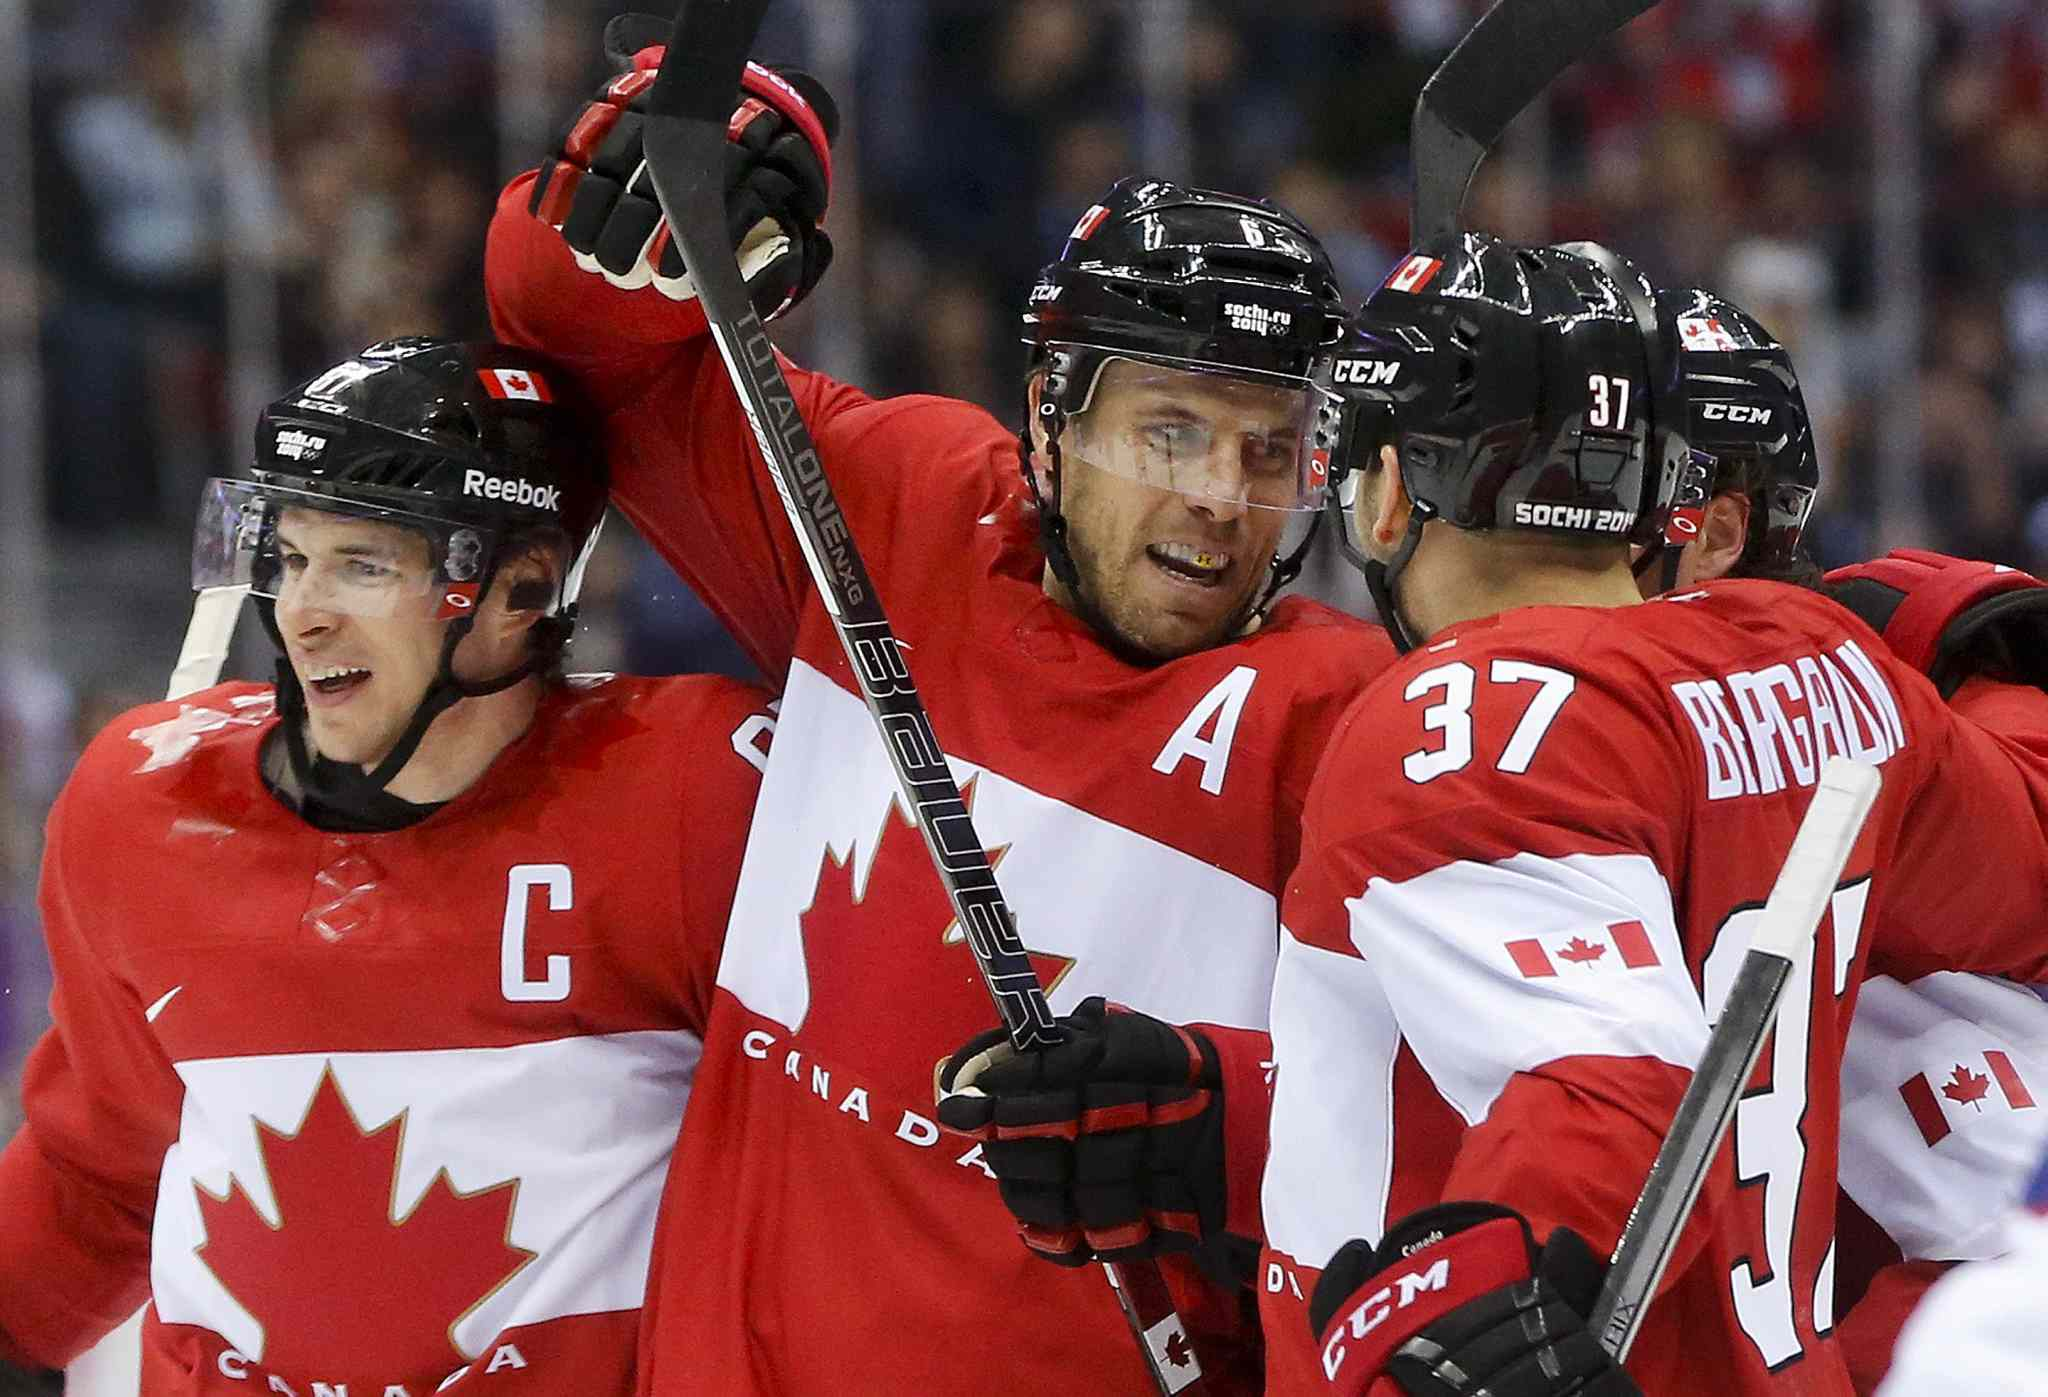 Canada defenceman Shea Weber, center, celebrates with forward Sidney Crosby, left, and forward Patrice Bergeron after scoring a goal against Norway.